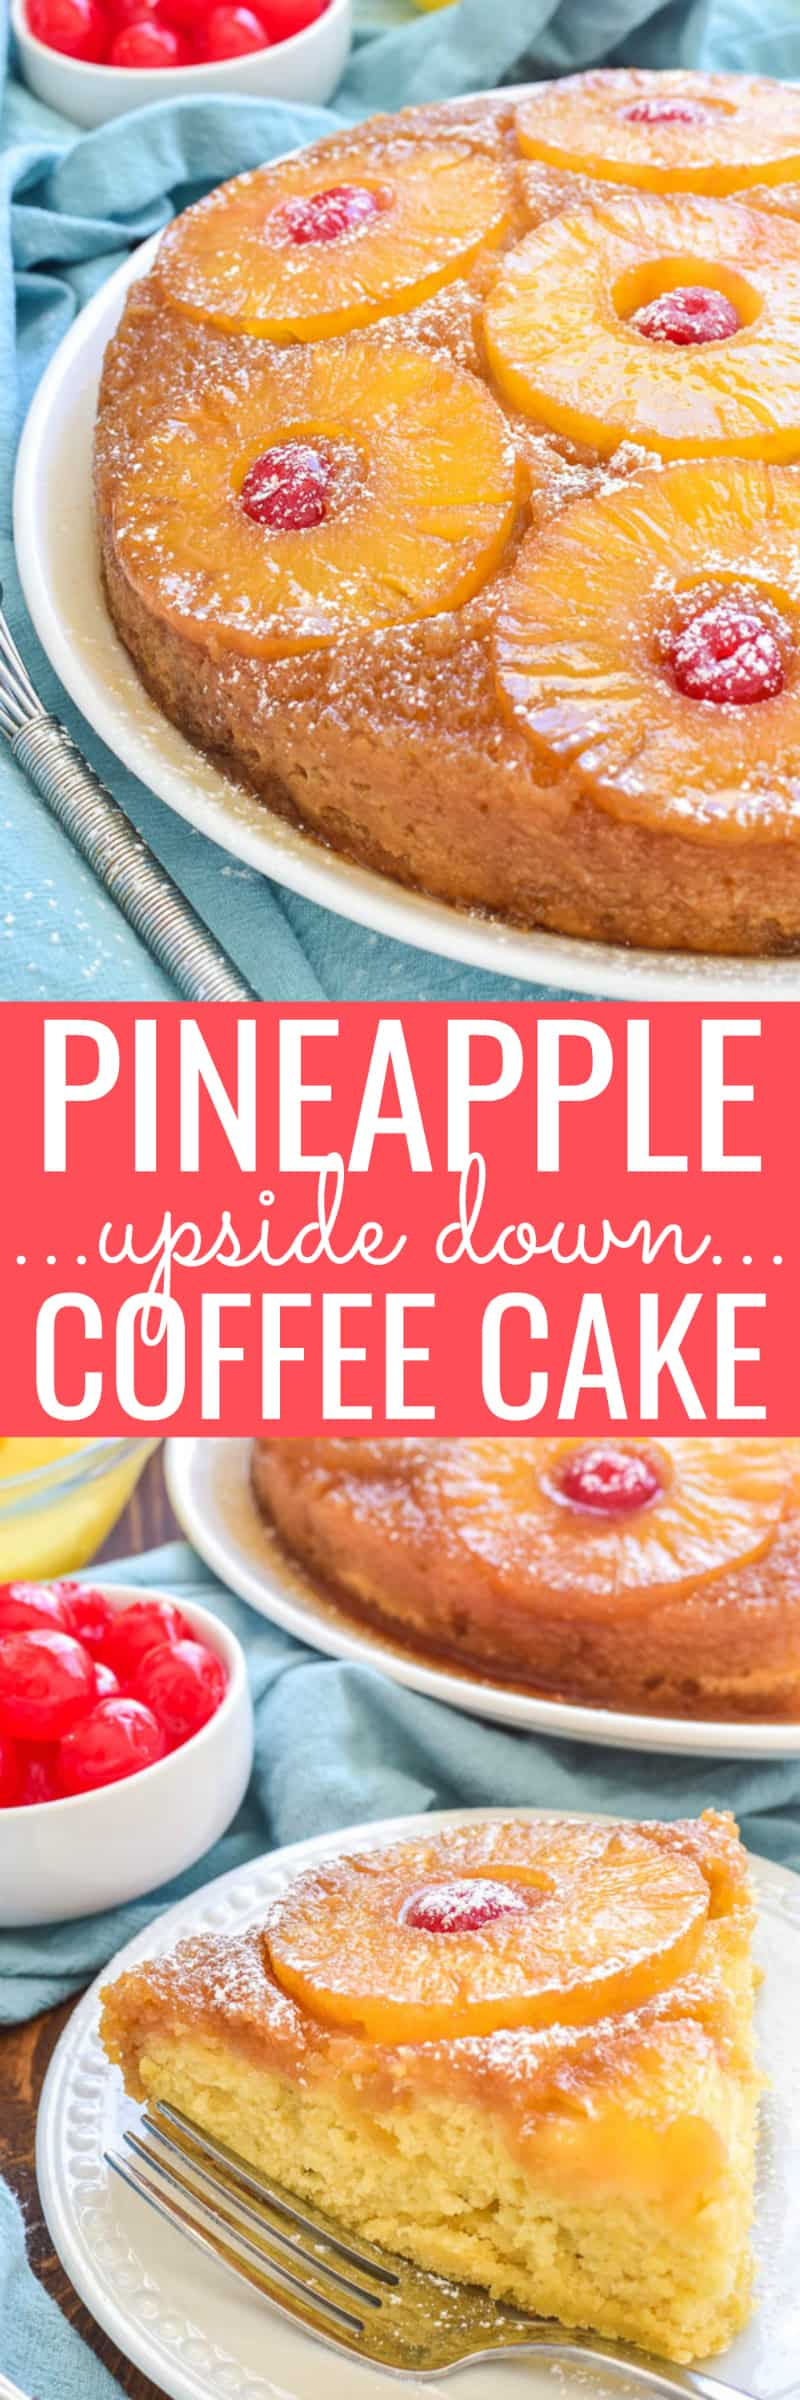 Collage image of Pineapple Upside Down Coffee Cake